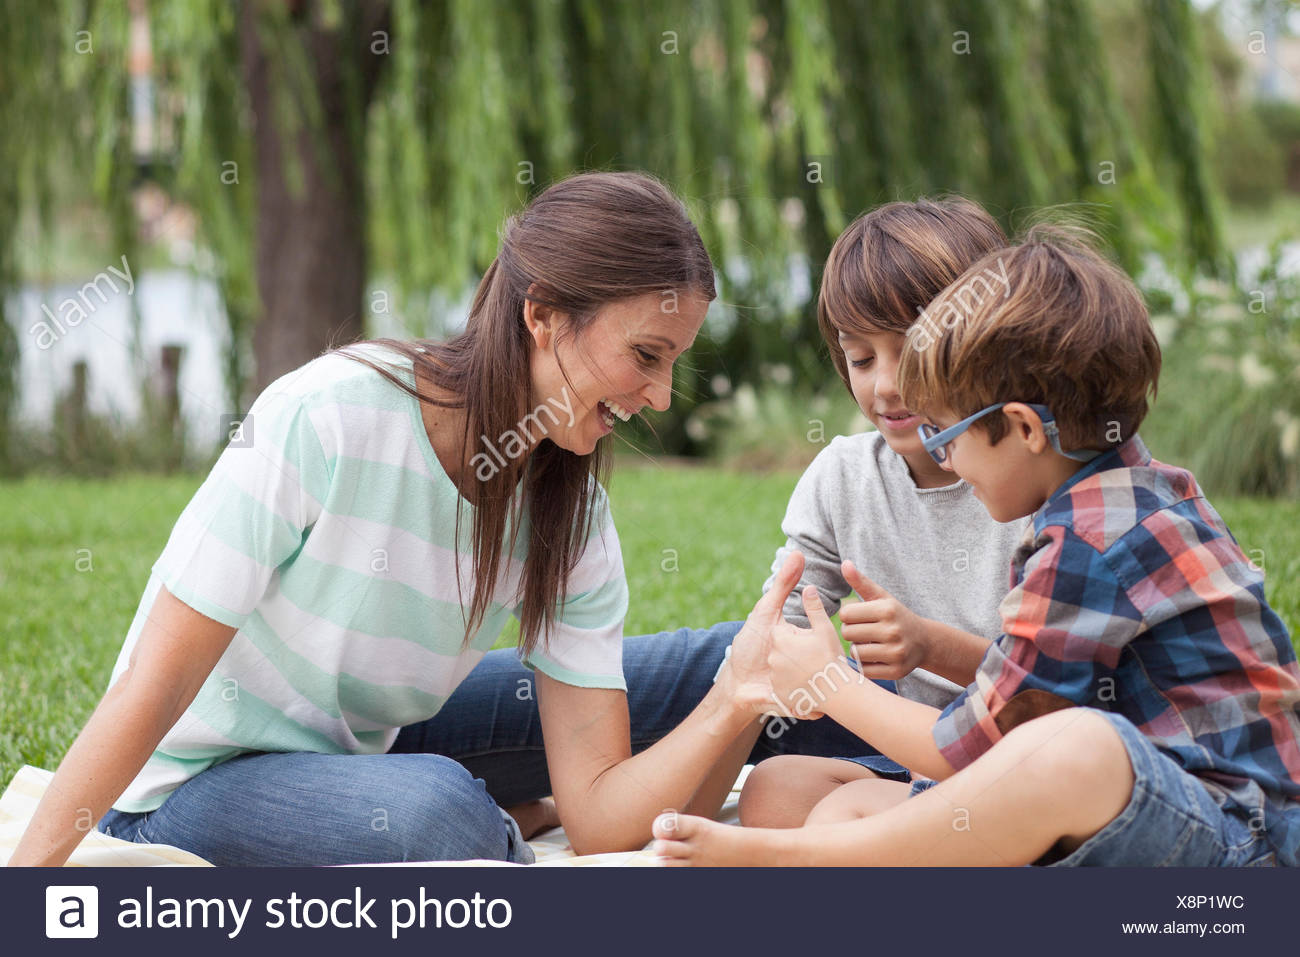 Mother teaching her sons how to thumb wrestle - Stock Image